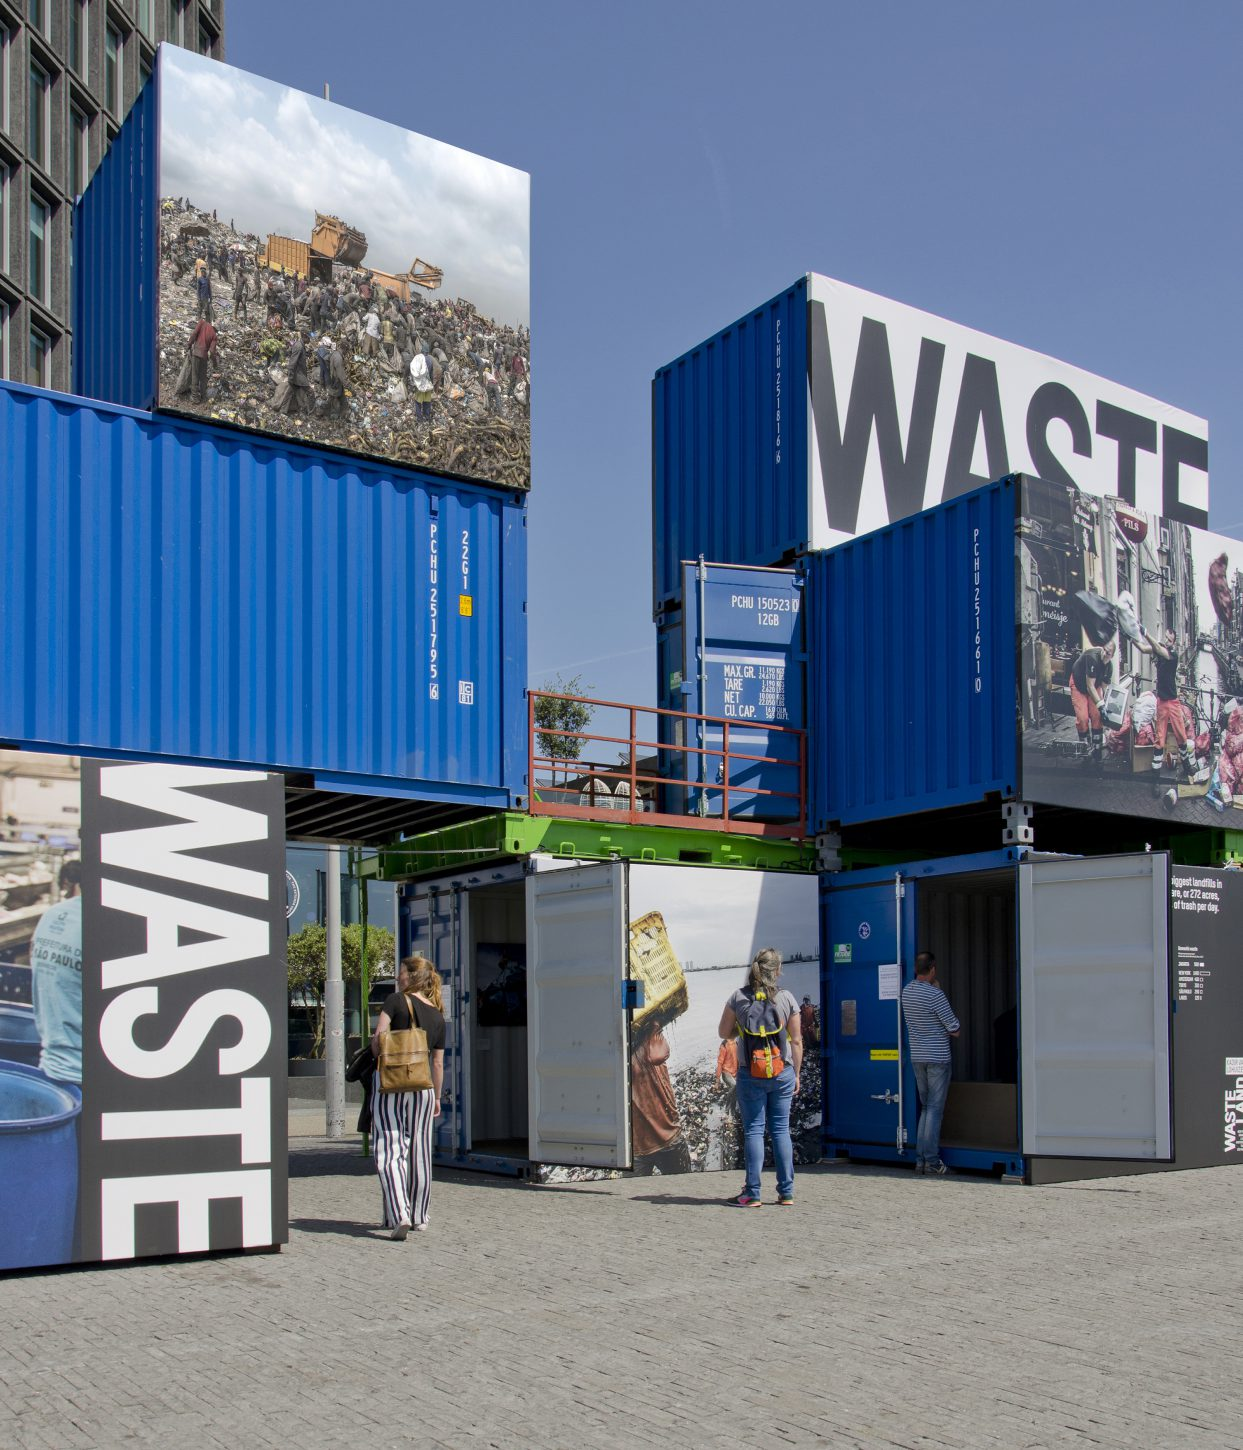 Shipping containers stacked up three stories high at the outdoor exhibition Wasteland, Kadir van Lohuizen